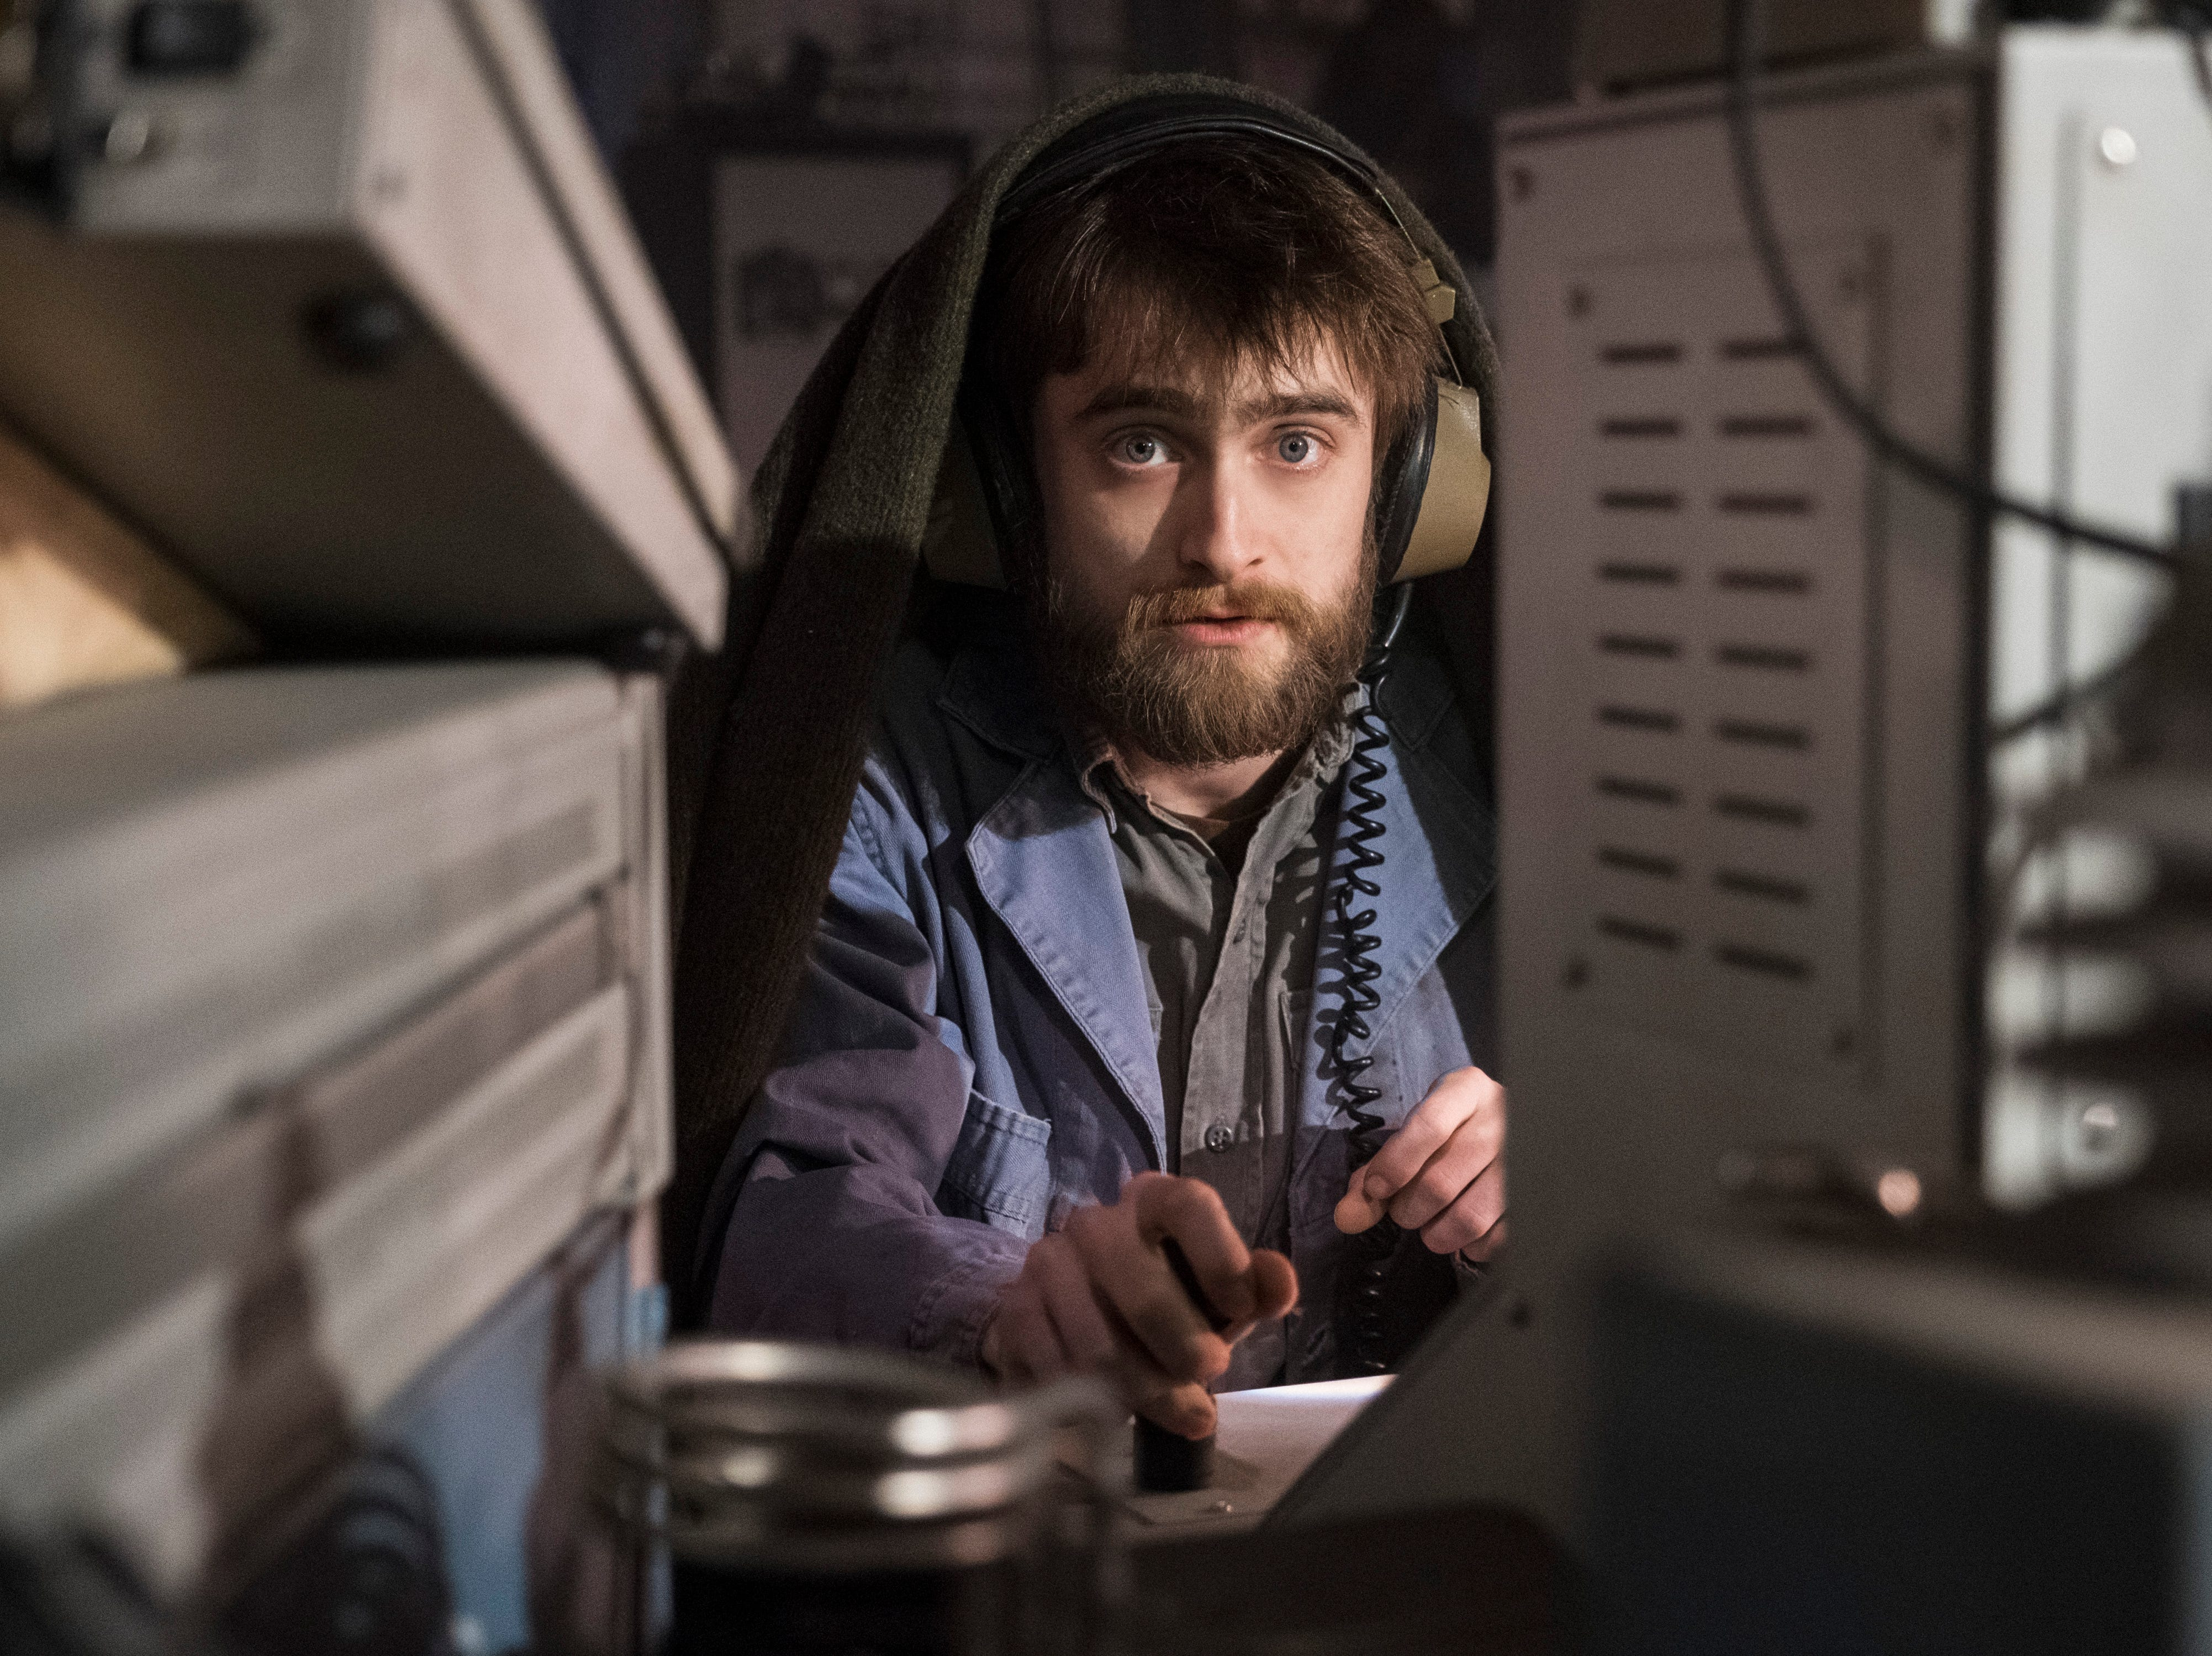 """Daniel Radcliffe is an angel answering prayers on TBS's new series """"Miracle Workers."""" But before he was fixing other people's issues, he was fixing his own with a magic wand in the """"Harry Potter"""" movie franchise. So what have he and his fellow """"Harry Potter"""" castmates been doing since wrapping up those movies?"""